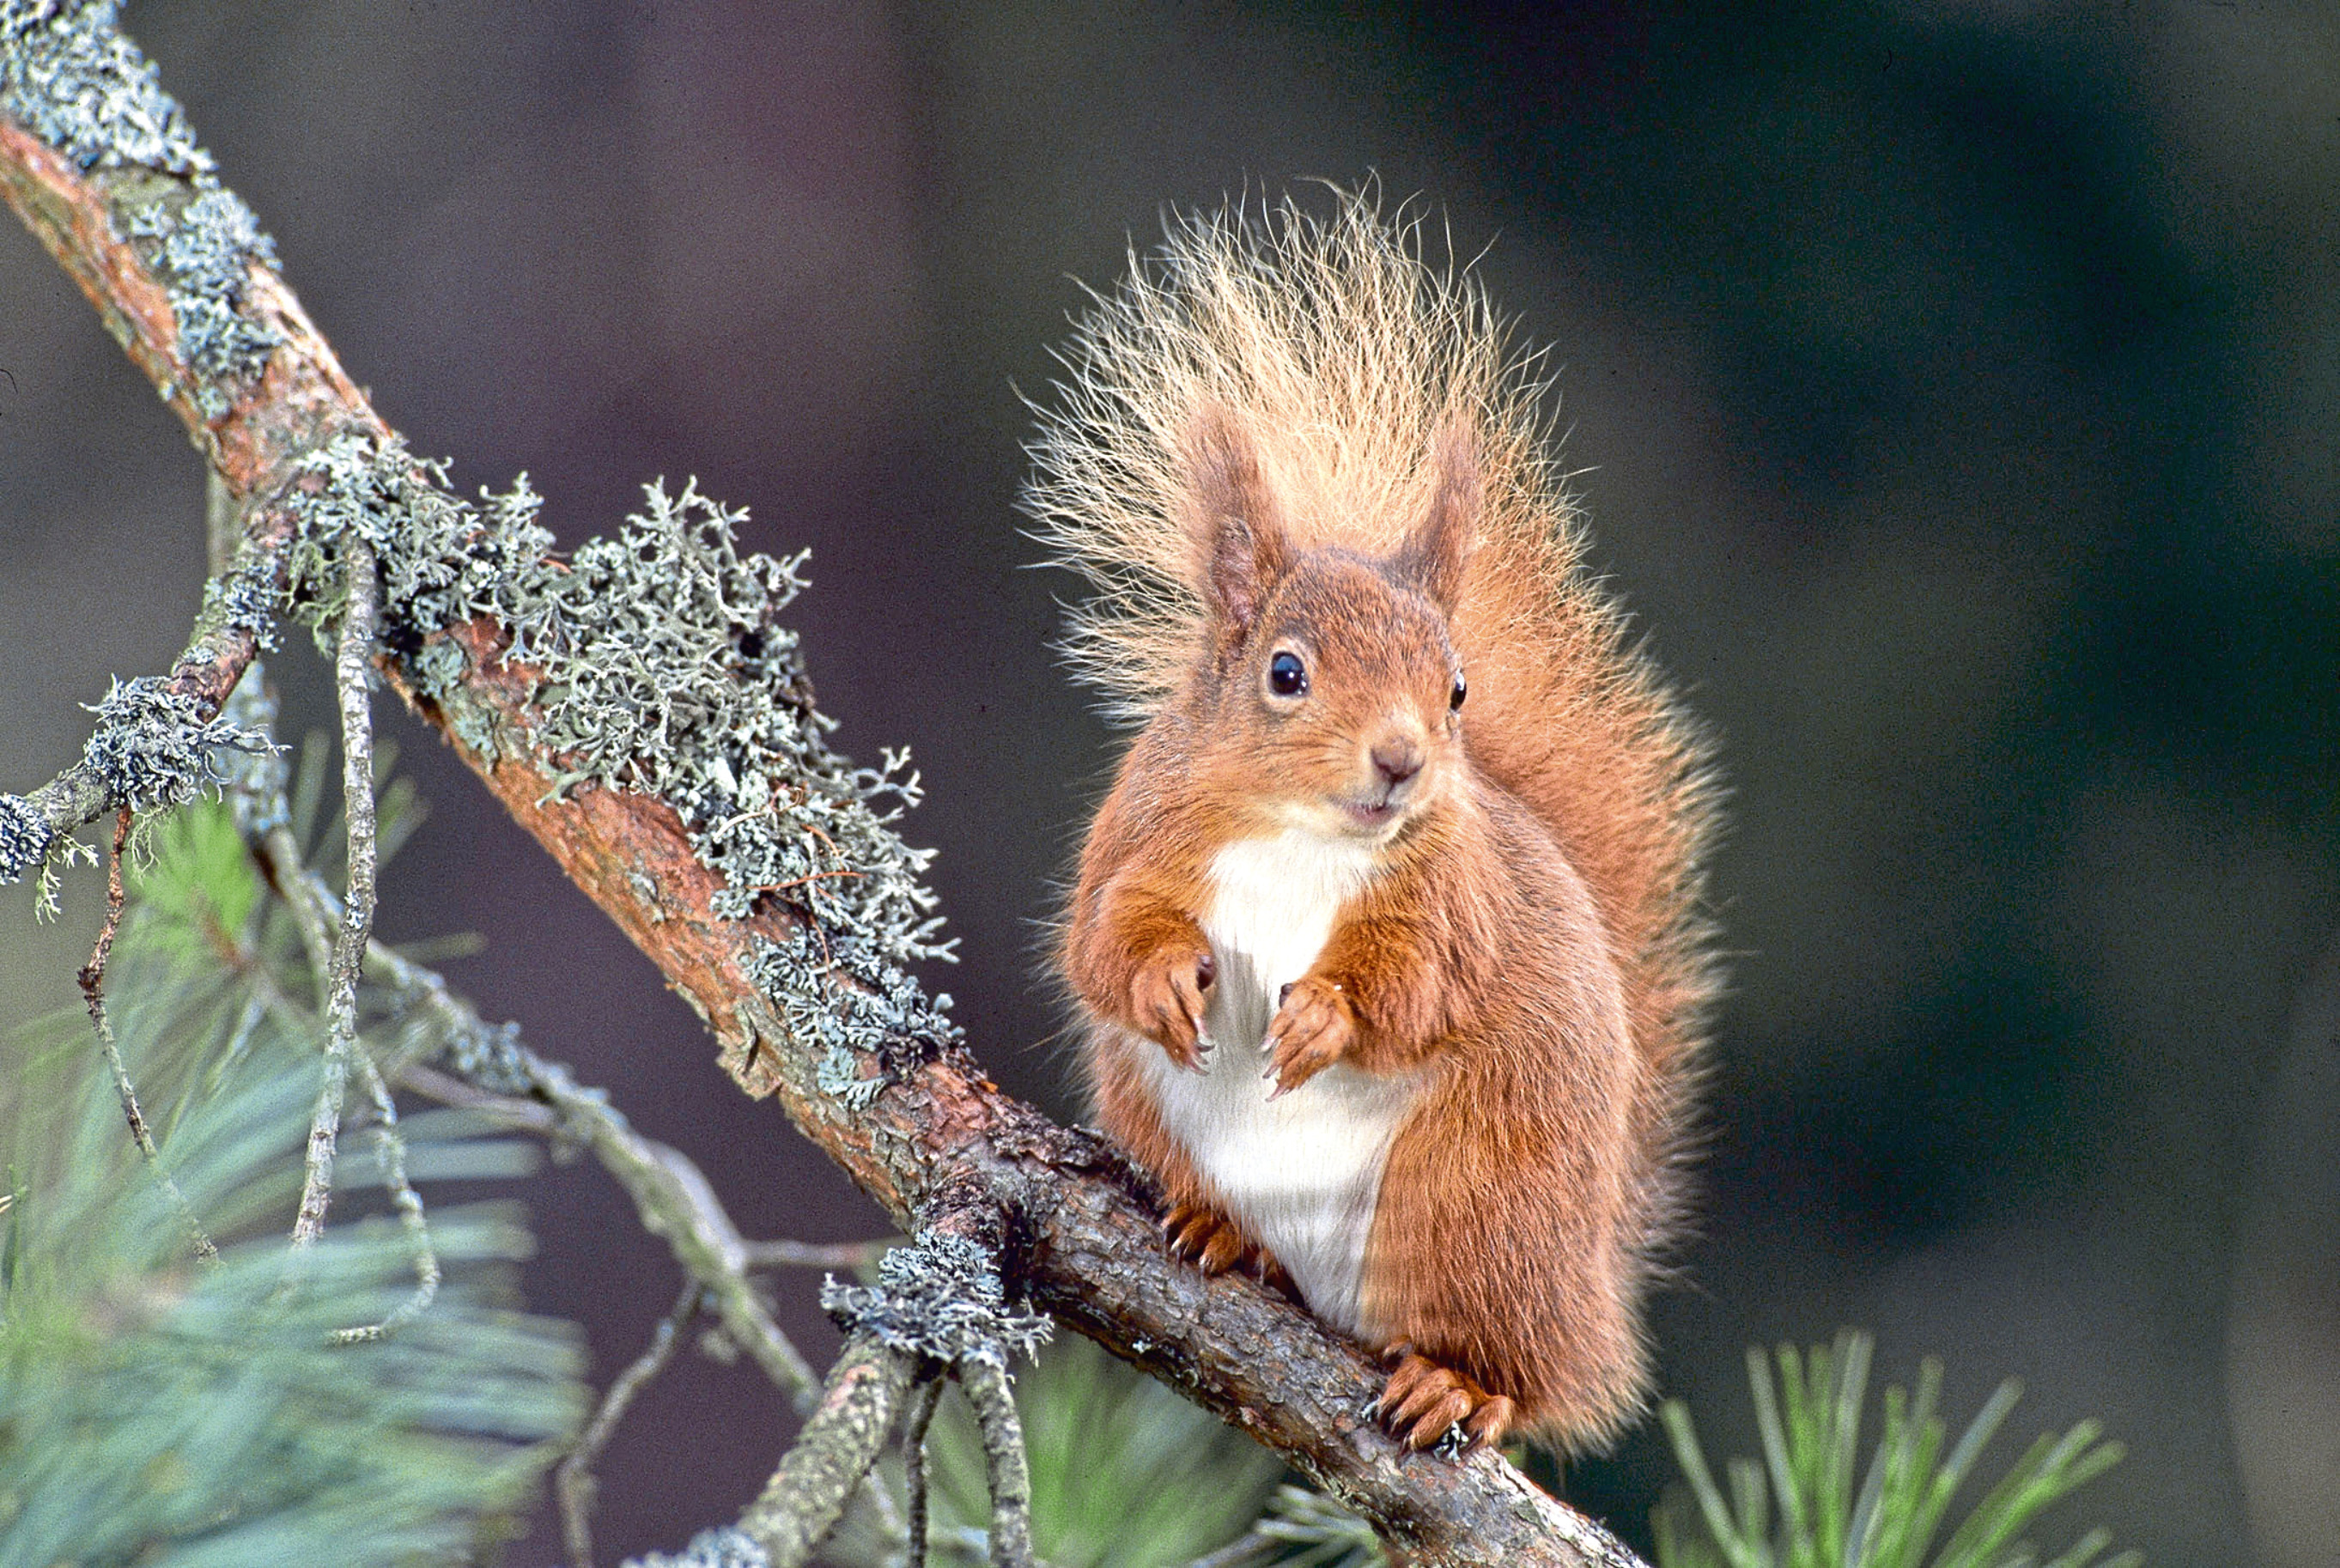 Saving Scotland's Red Squirrels encourages more people to log sightings of red and grey squirrels across the country.